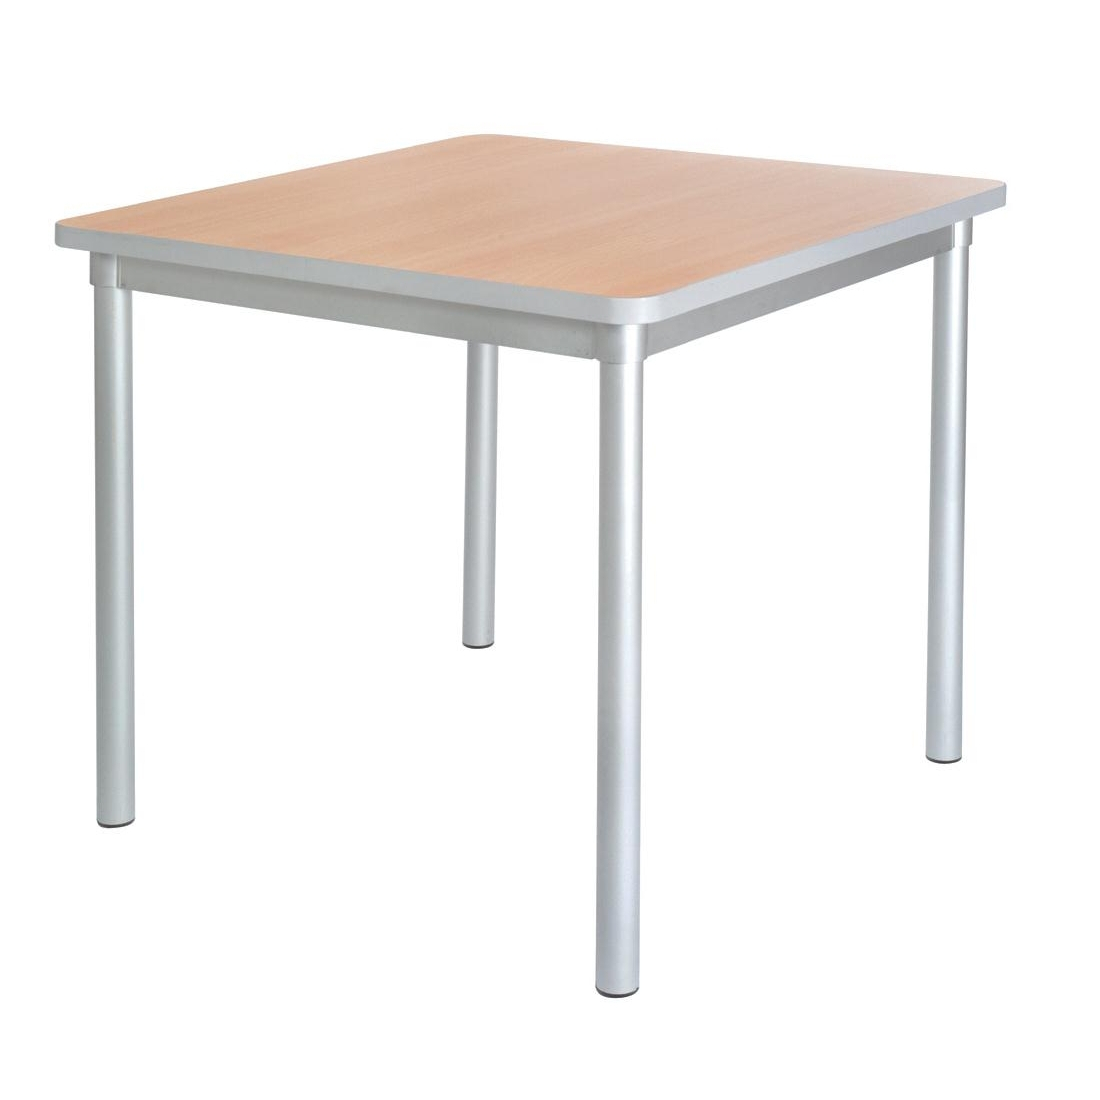 Gopak Enviro Indoor Beech Effect Square Dining Table 750mm